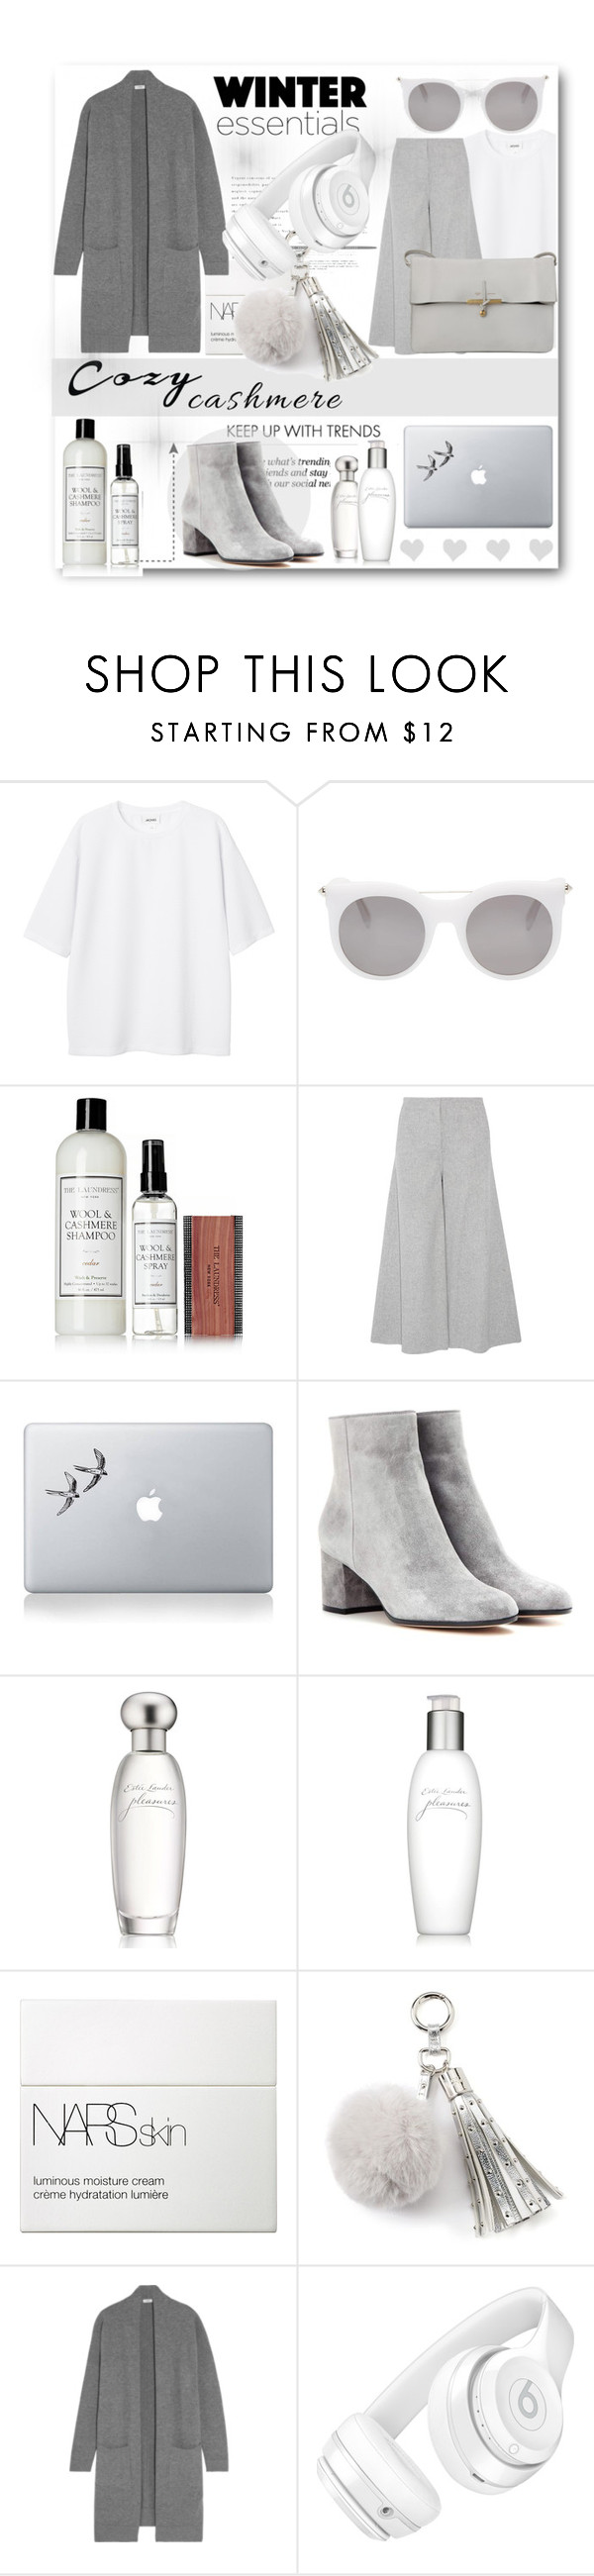 """""""Cashmere"""" by dobrescu-dana ❤ liked on Polyvore featuring Erdem, Monki, Alexander McQueen, The Laundress, Theory, CÉLINE, Vinyl Revolution, Gianvito Rossi, Estée Lauder and NARS Cosmetics"""